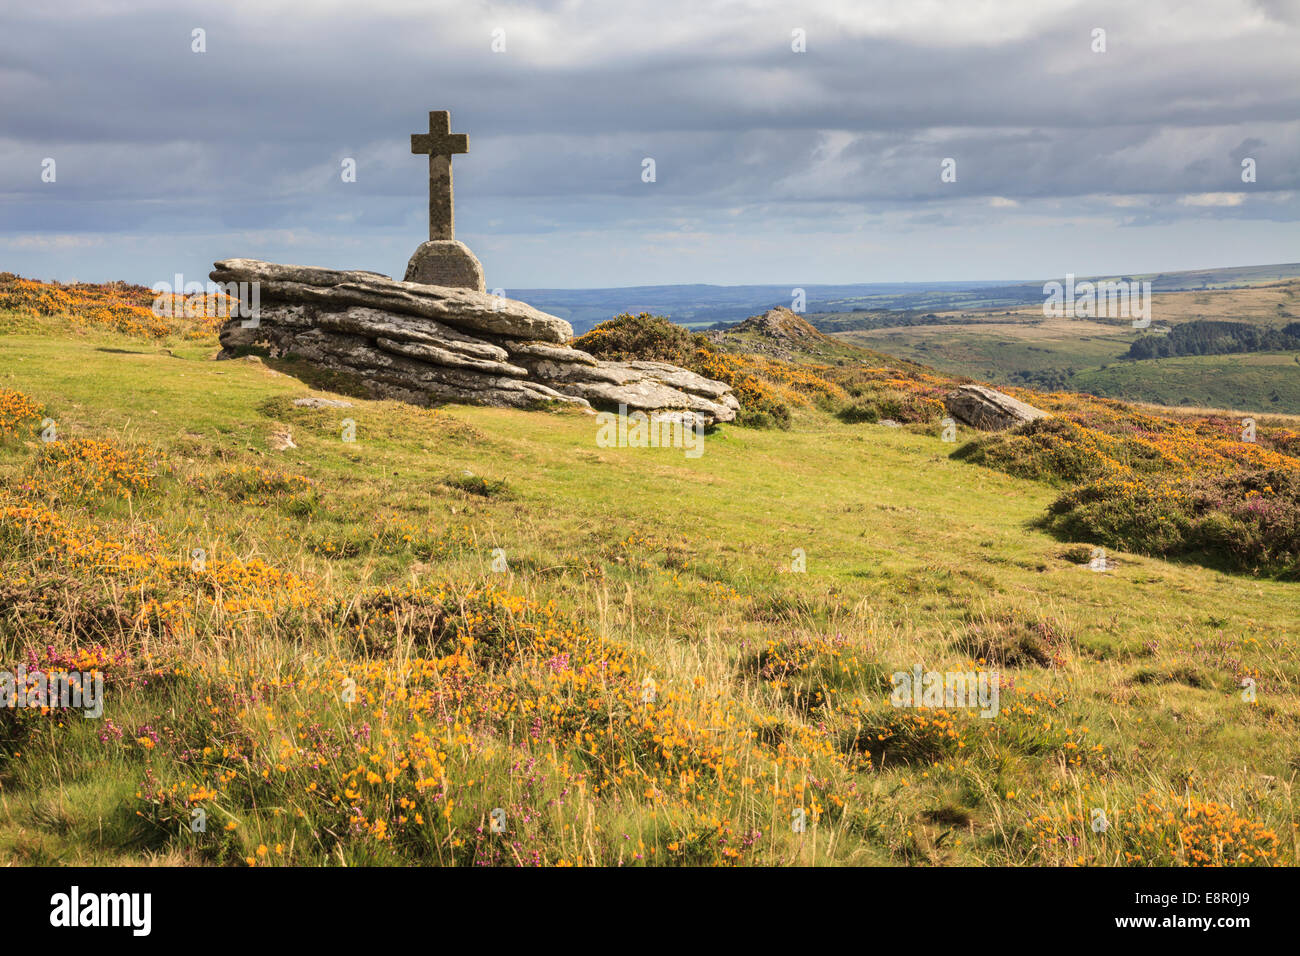 Yar Tor Cross in the Dartmoor National Park - Stock Image